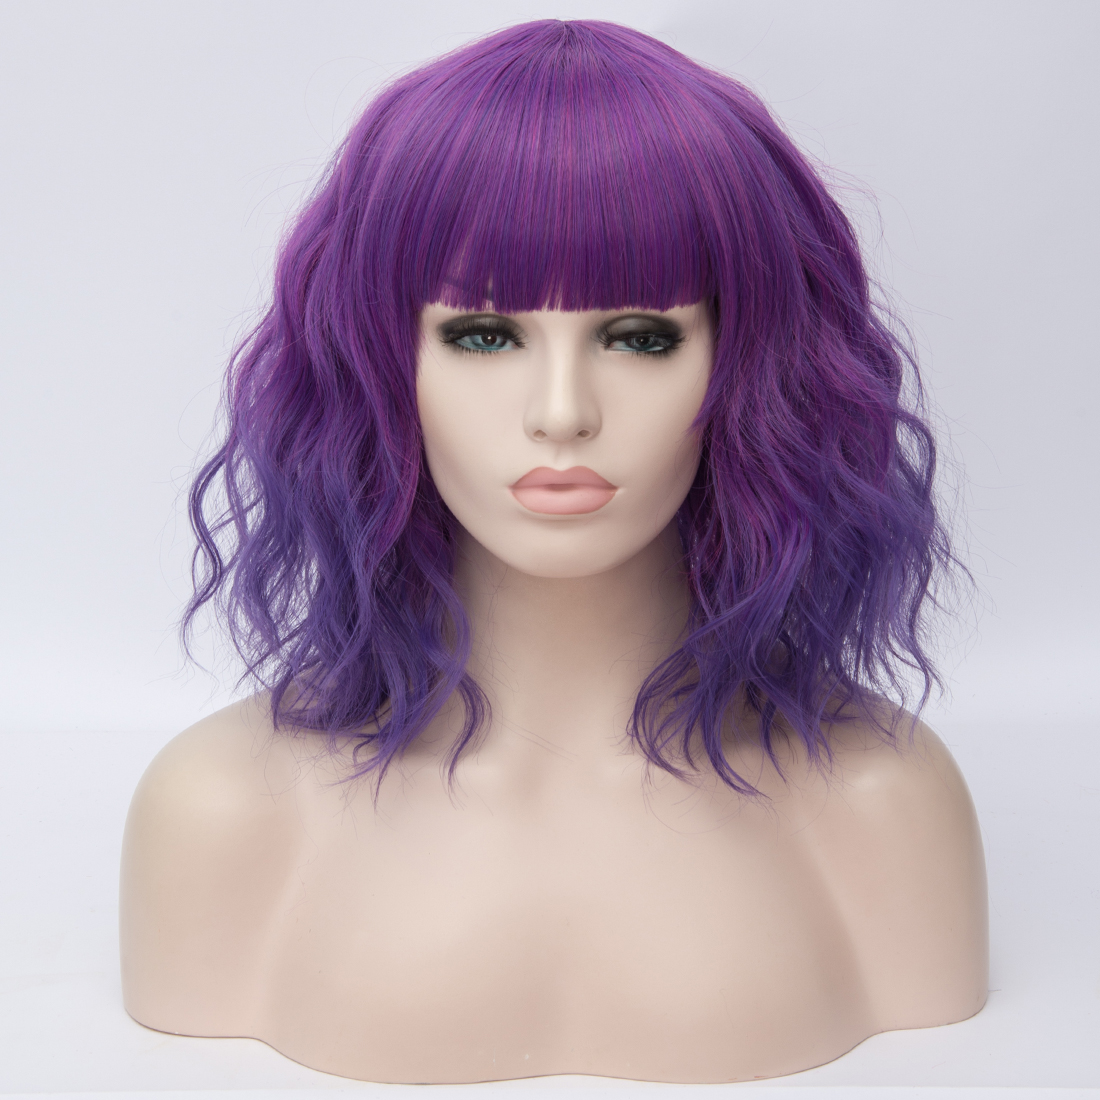 Hfa322f69a907455a8d6bf7fc77b0e9ddU - Similler Short Synthetic Wig for Women Cosplay Curly Hair Heat Resistance Ombre Color Blue Purple Pink Green Orange Two Tones